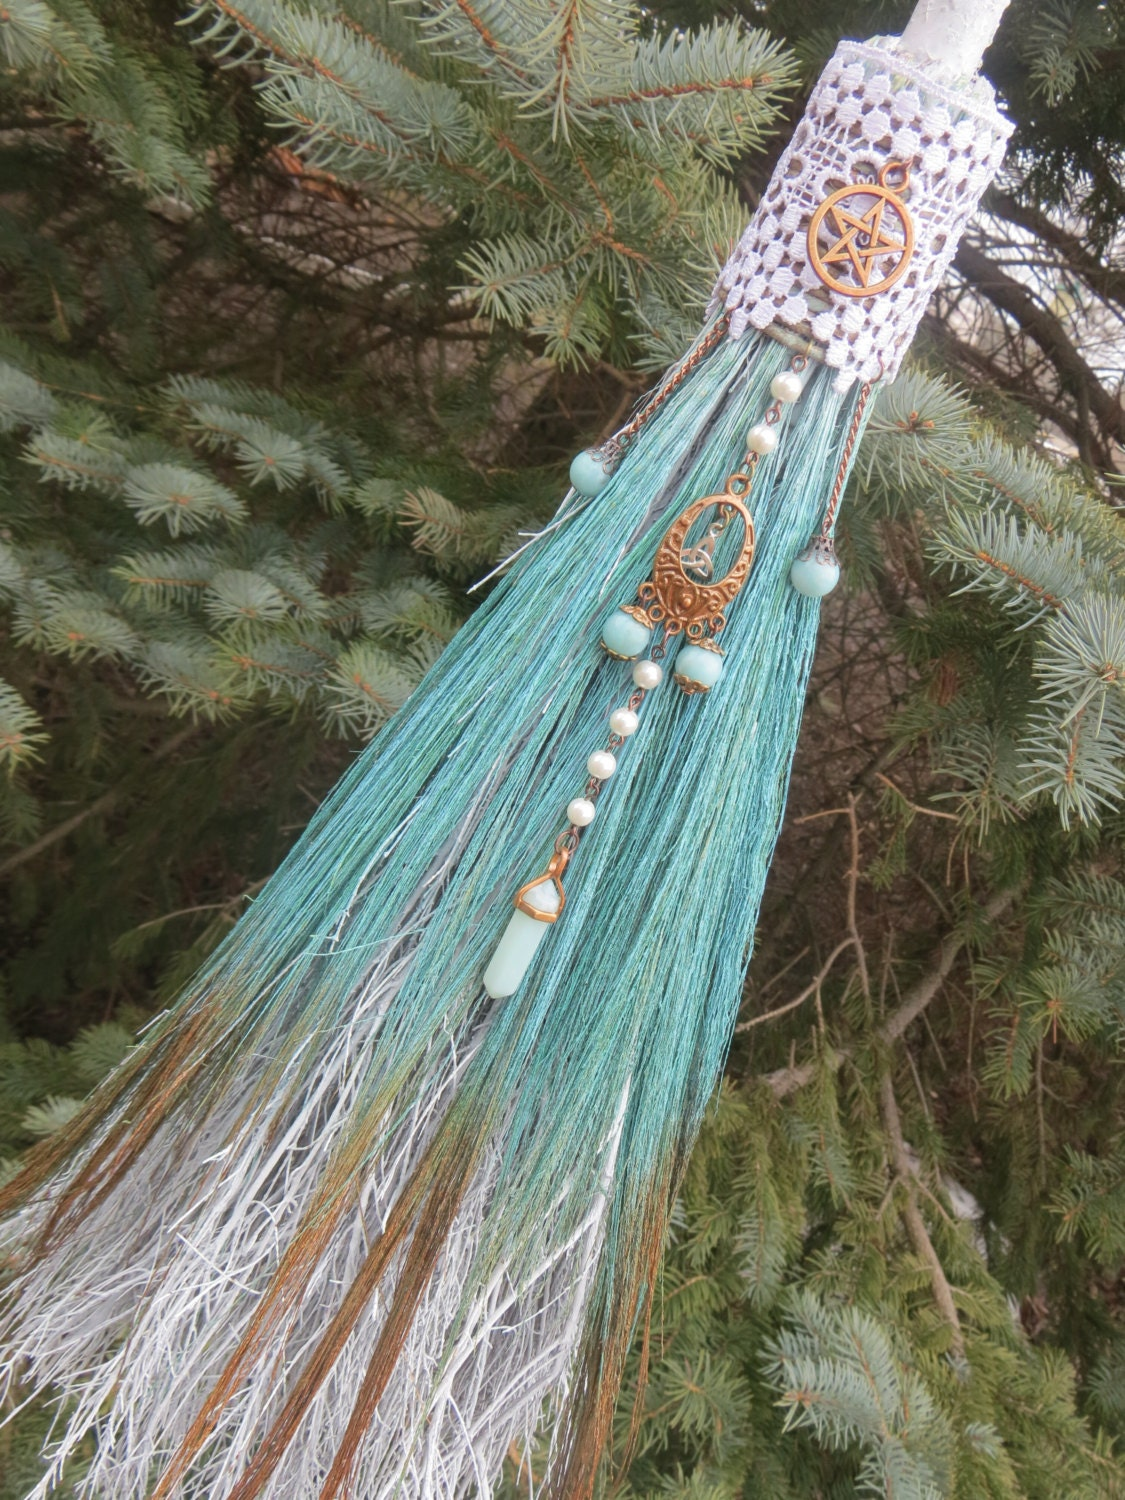 Witch's Protection Broom in Seafoam Green and Copper